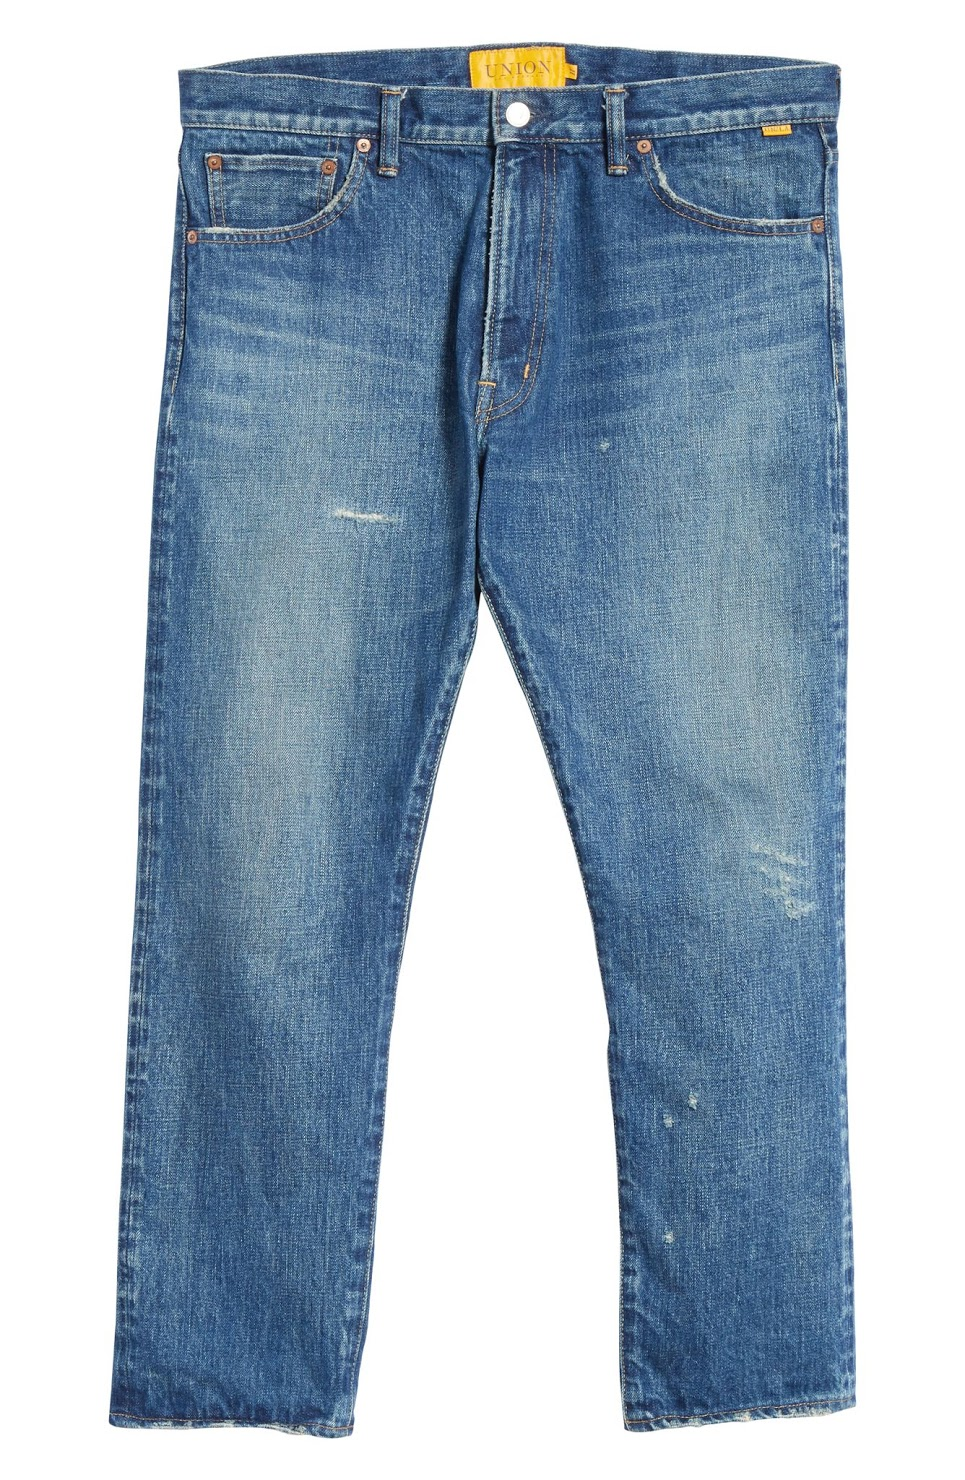 Union_Denim_$324.jpeg